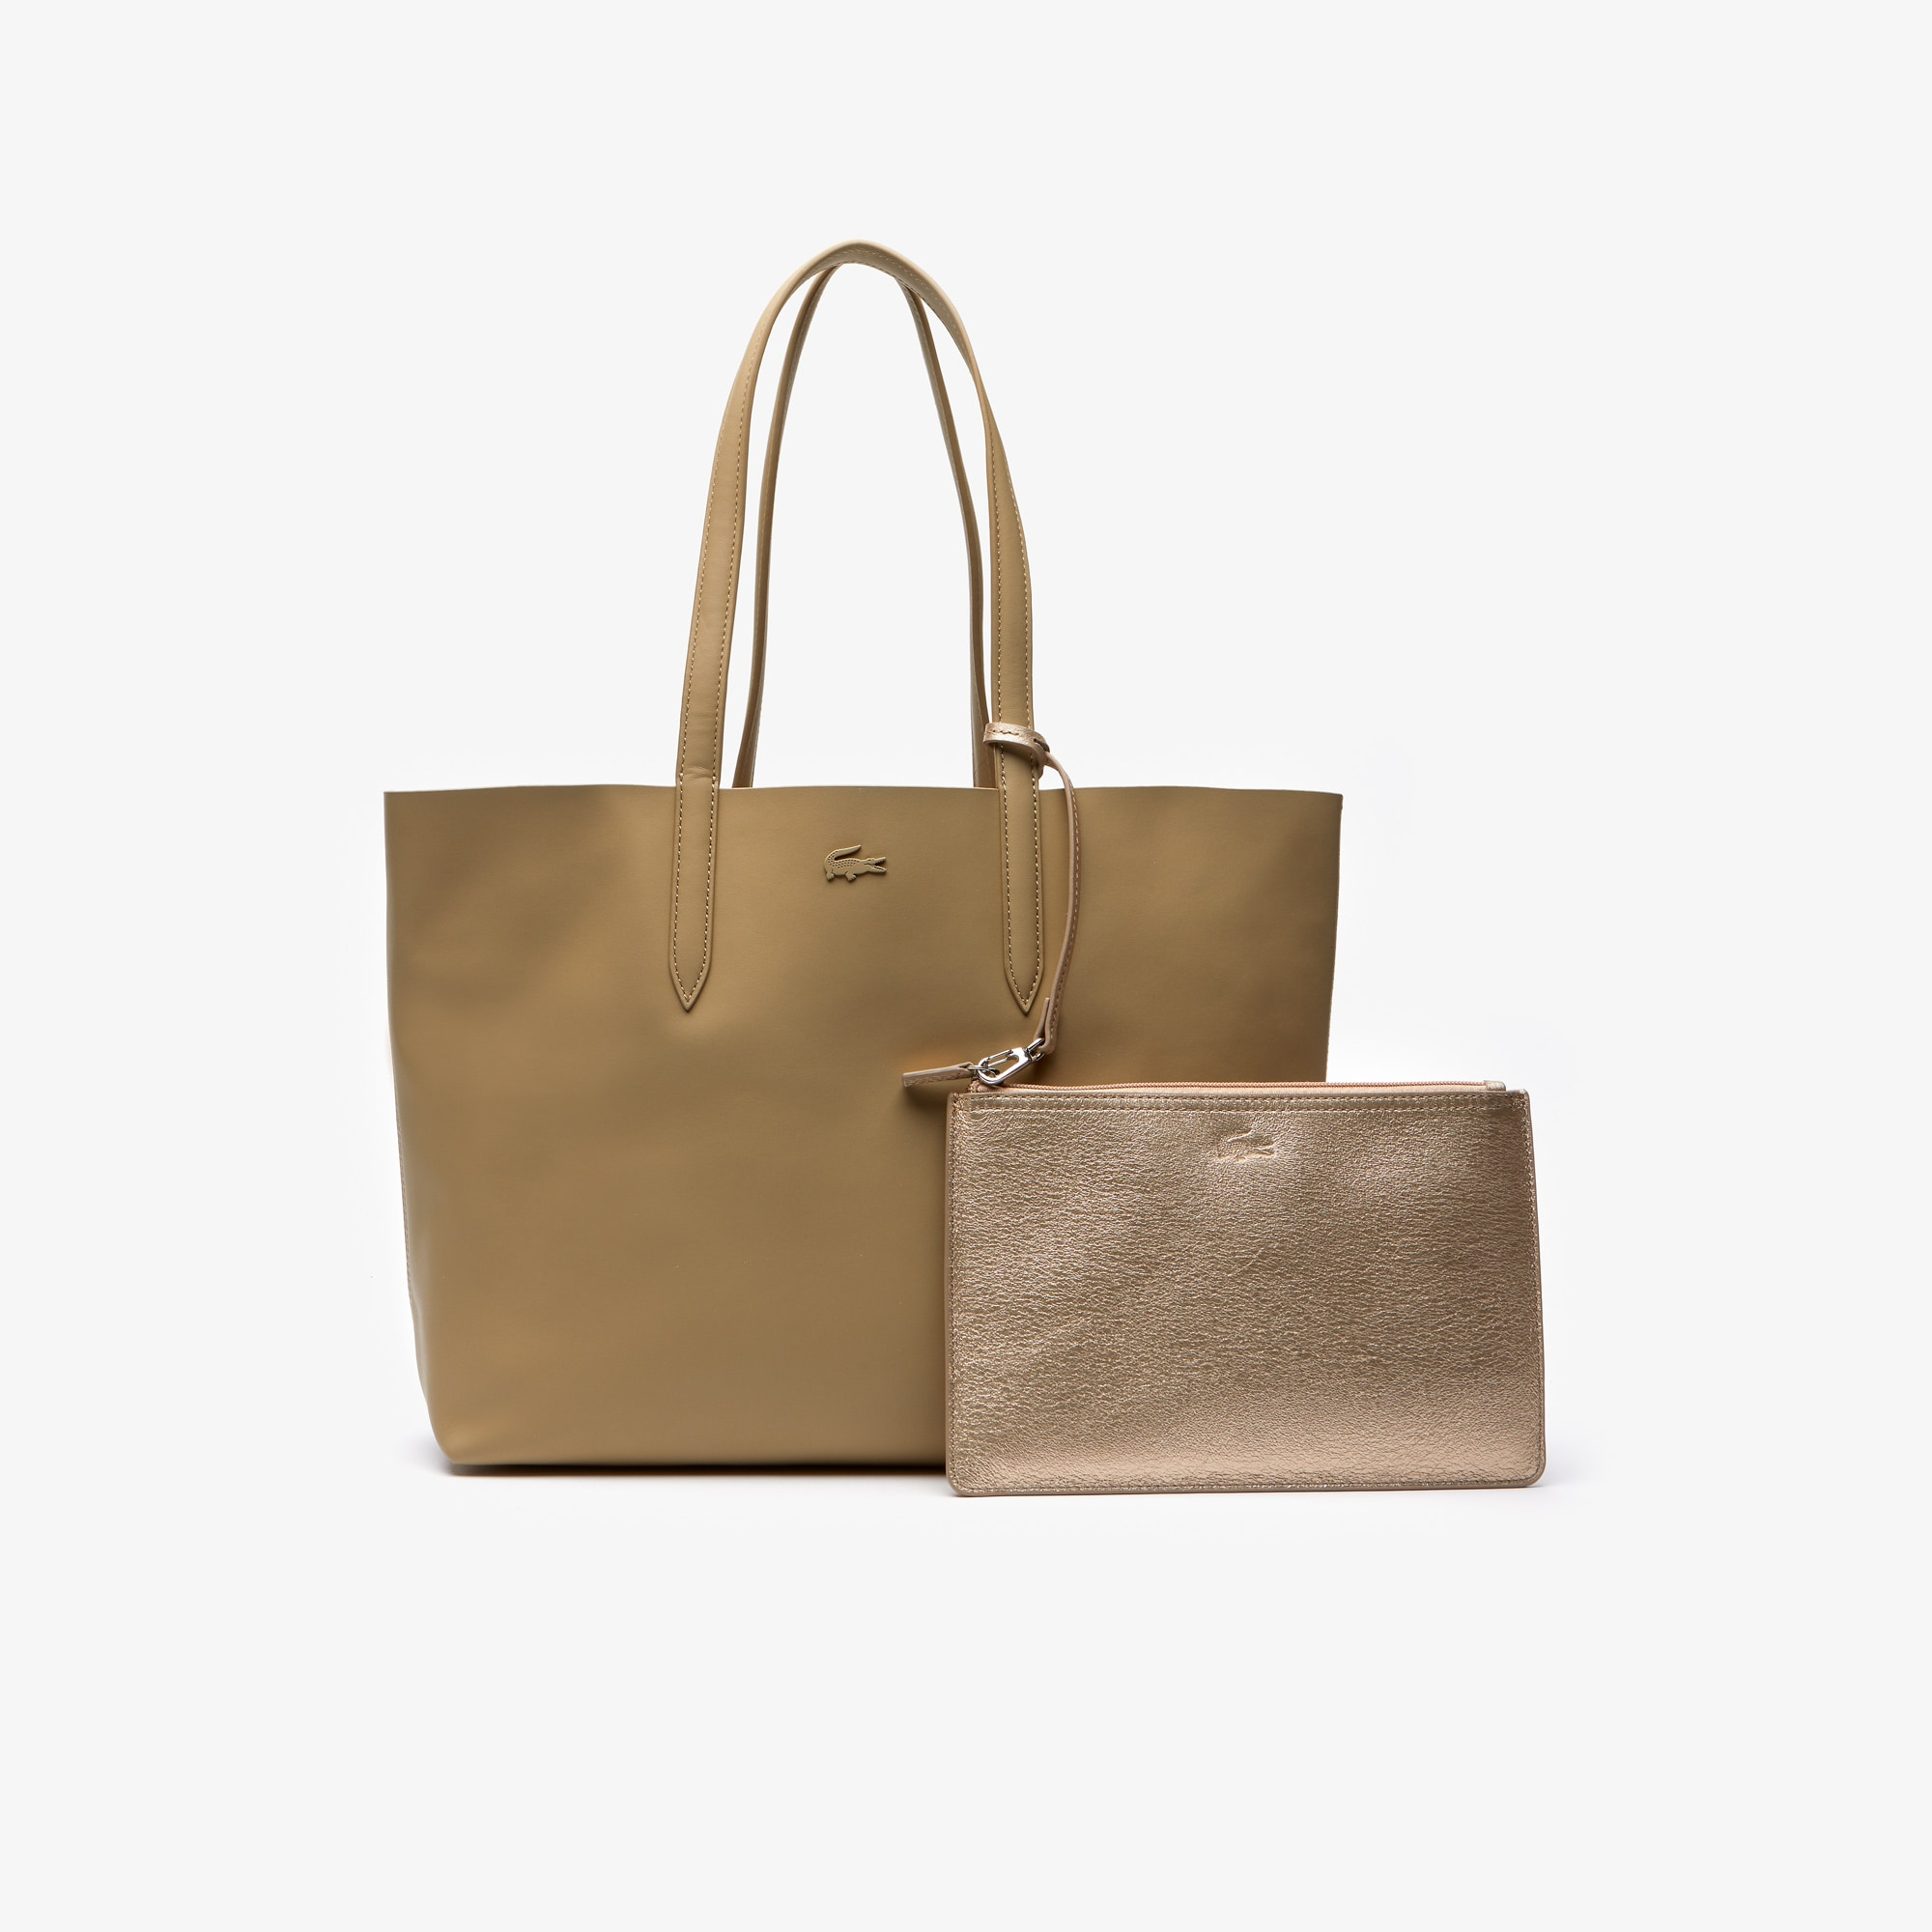 Lacoste Handbags Women's amp; Leather Collection Bags Goods 4qv1Svn